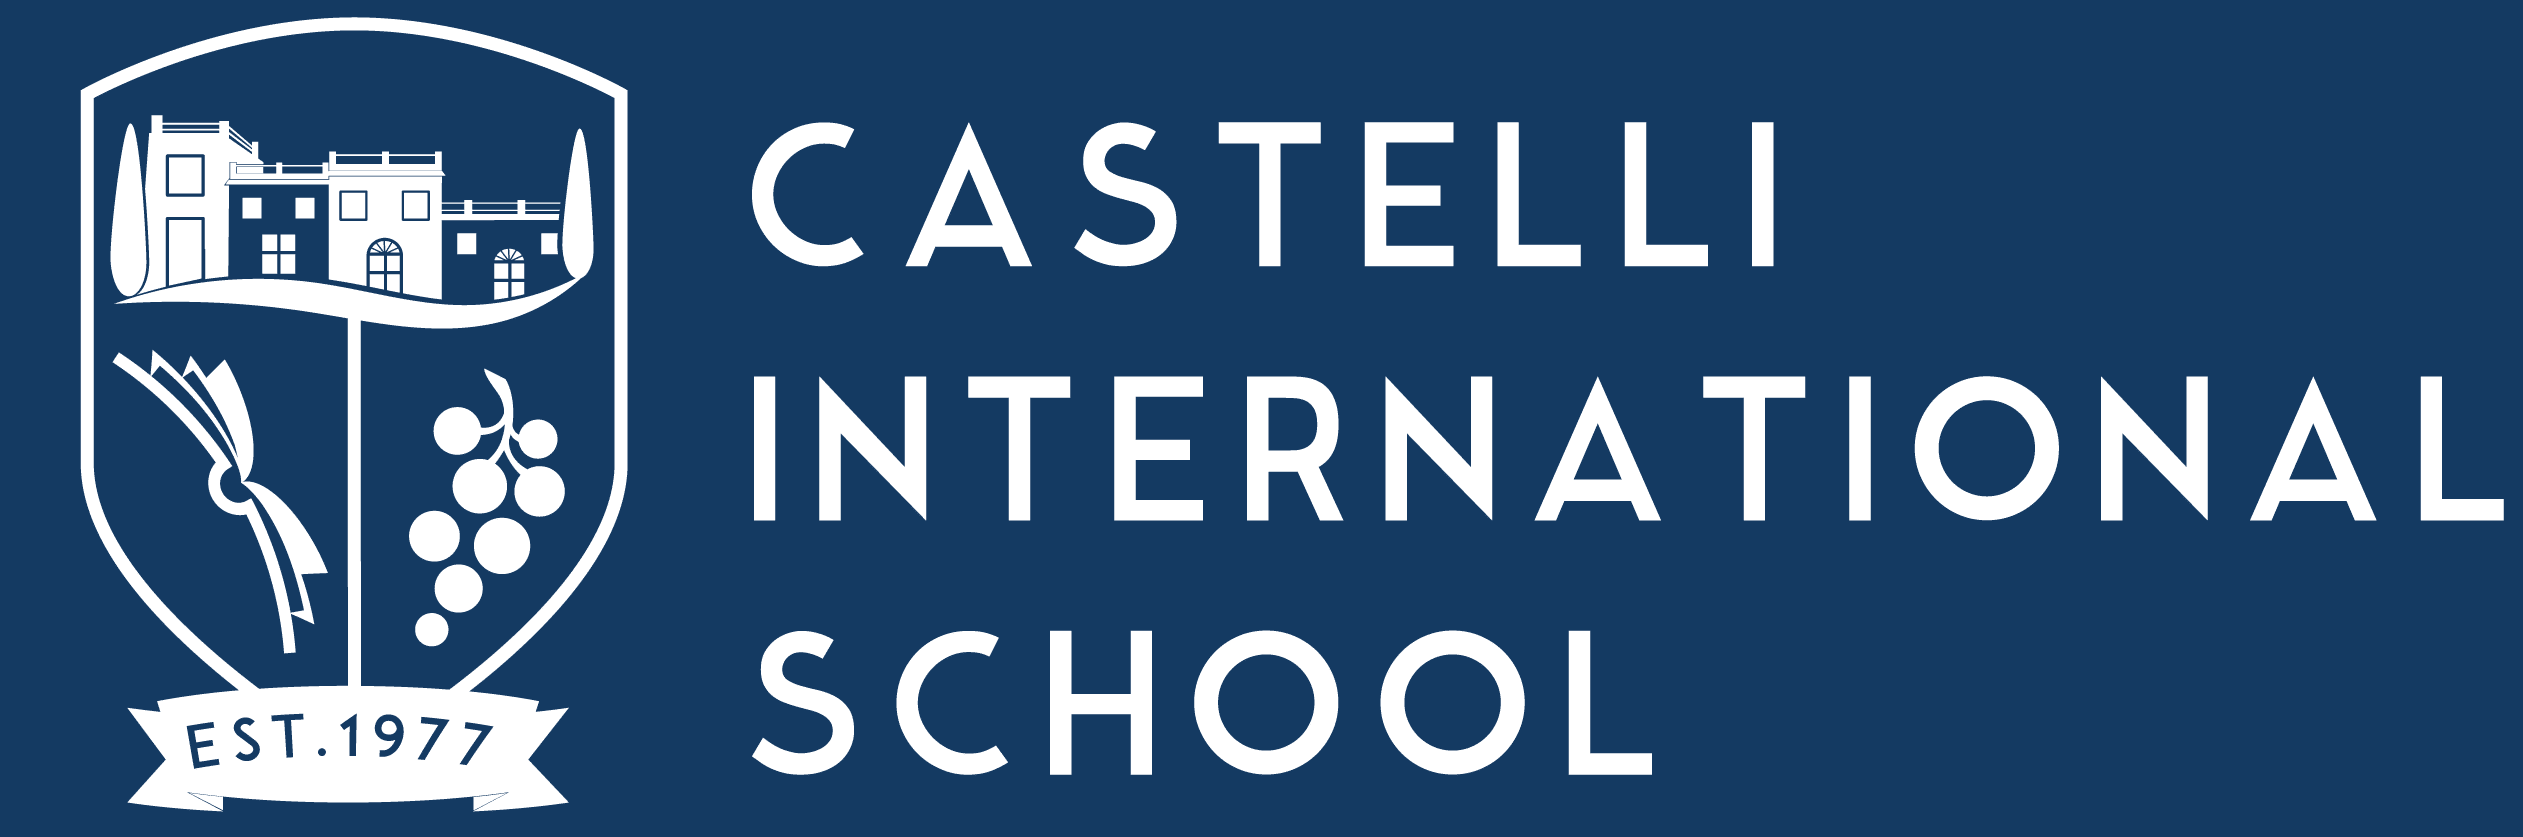 Castelli International School